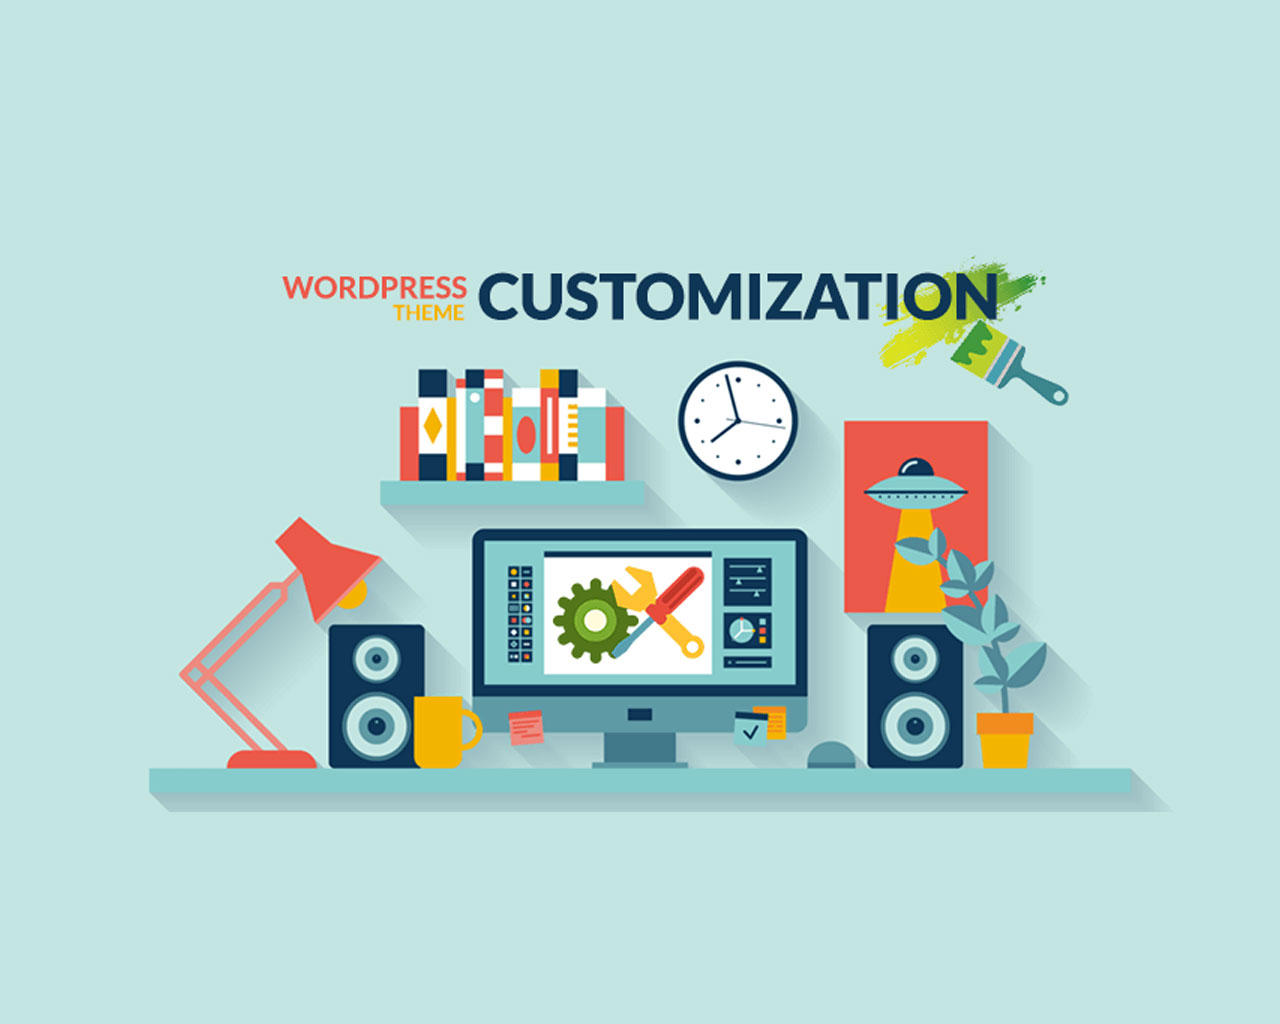 I will provide professional wordpress customization services